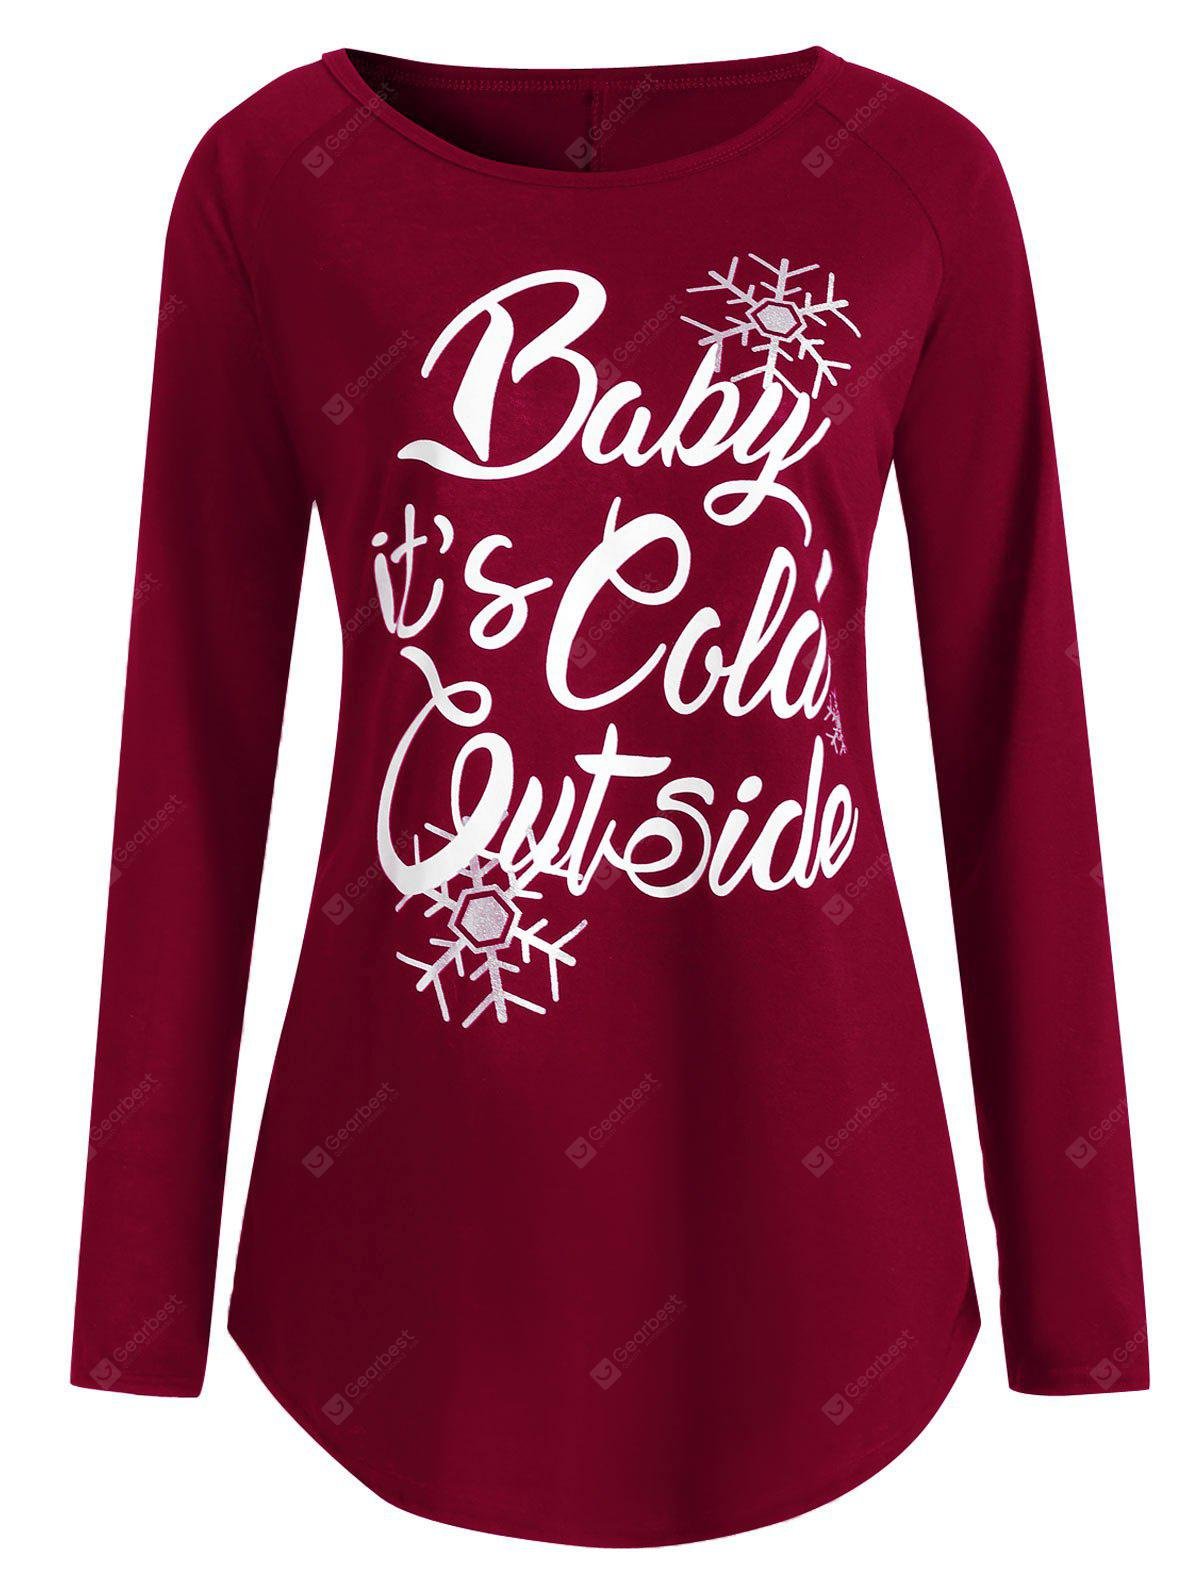 Plus Size Baby Its Cold Outside Christmas T-shirt